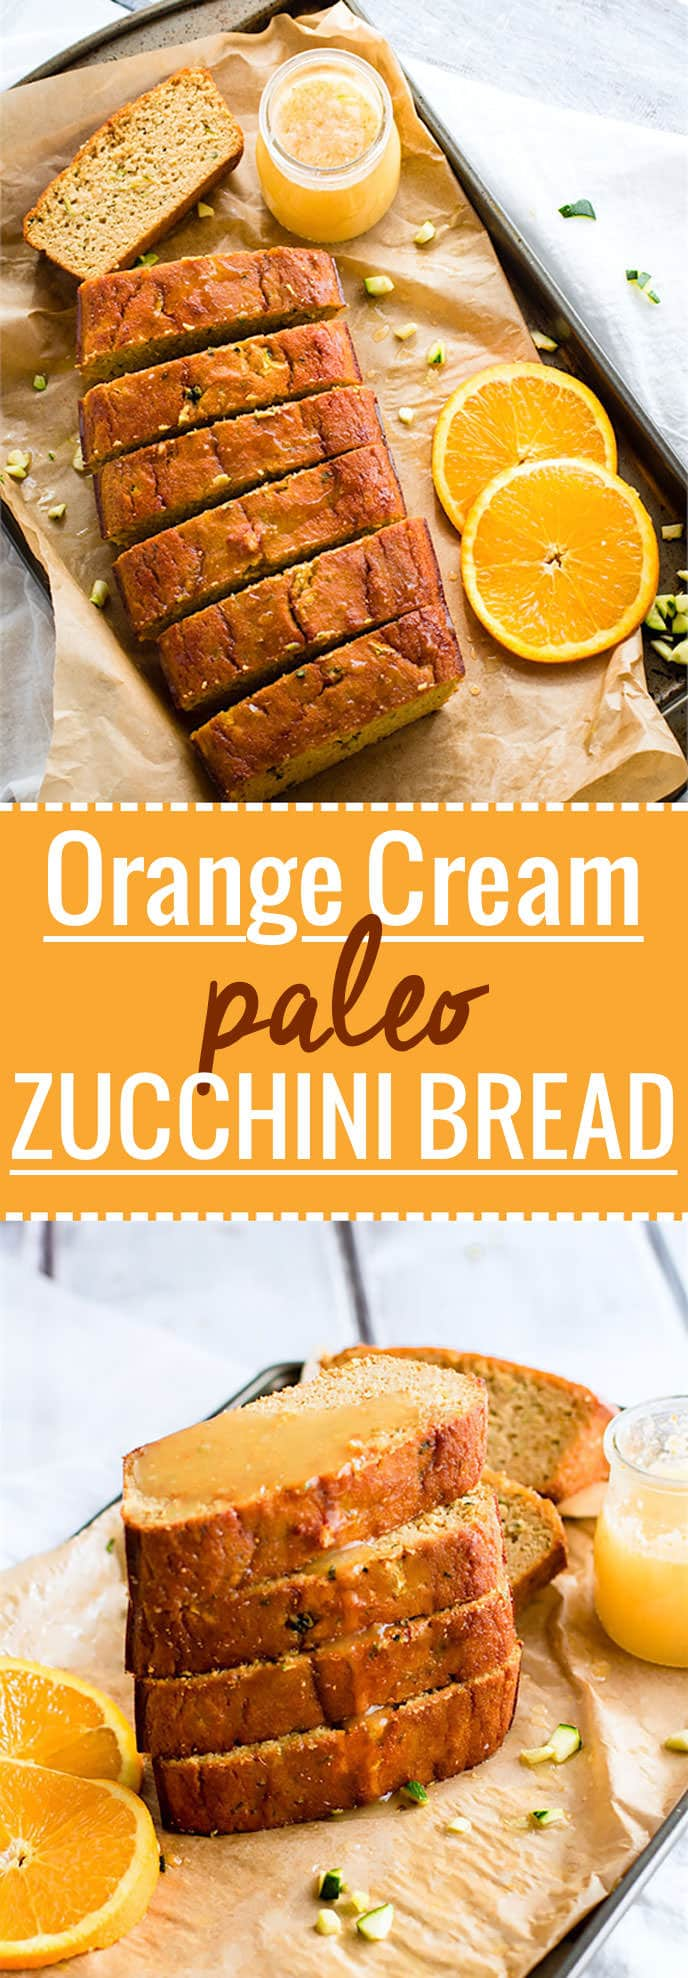 Zesty Orange Cream Paleo Zucchini Bread! A classic zucchini bread recipe made healthy, paleo, and packed with vitamin C! This paleo zucchini bread is an easy to make and super refreshing with a ginger glaze to drizzle on top. @cottercrunch